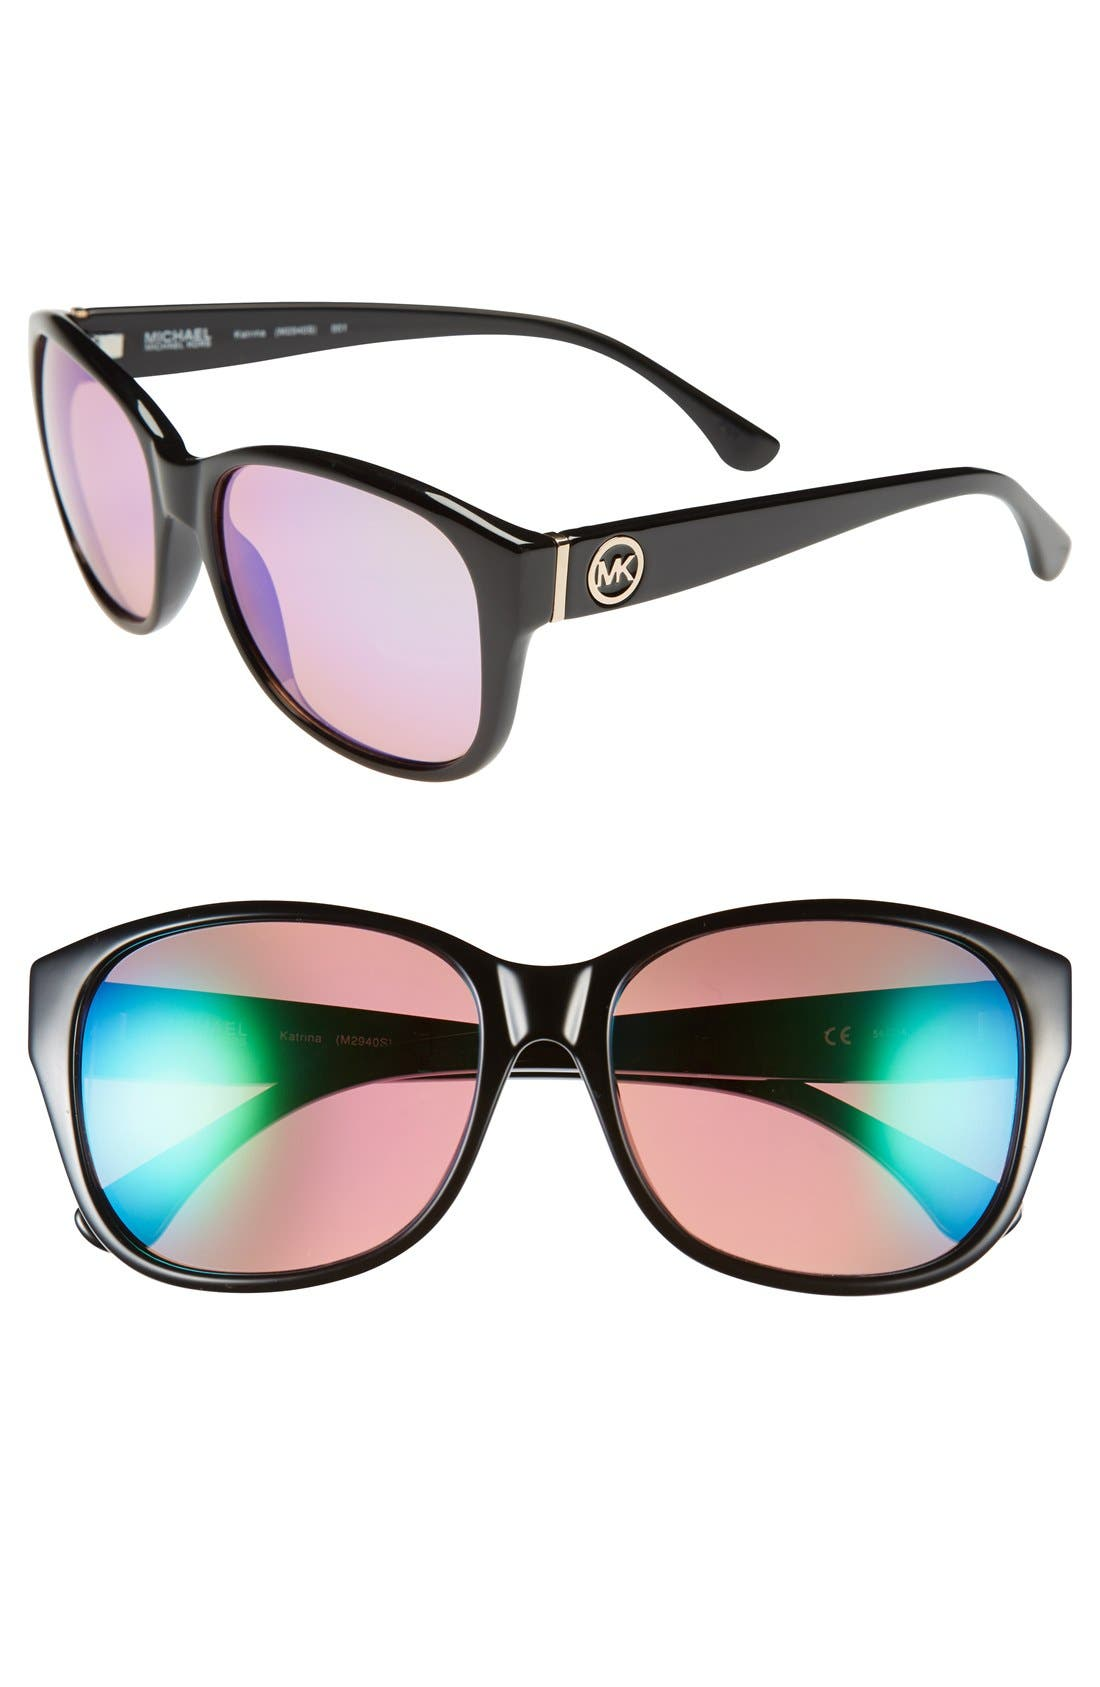 Alternate Image 1 Selected - Michael Kors 'Katrina' 56mm Retro Sunglasses